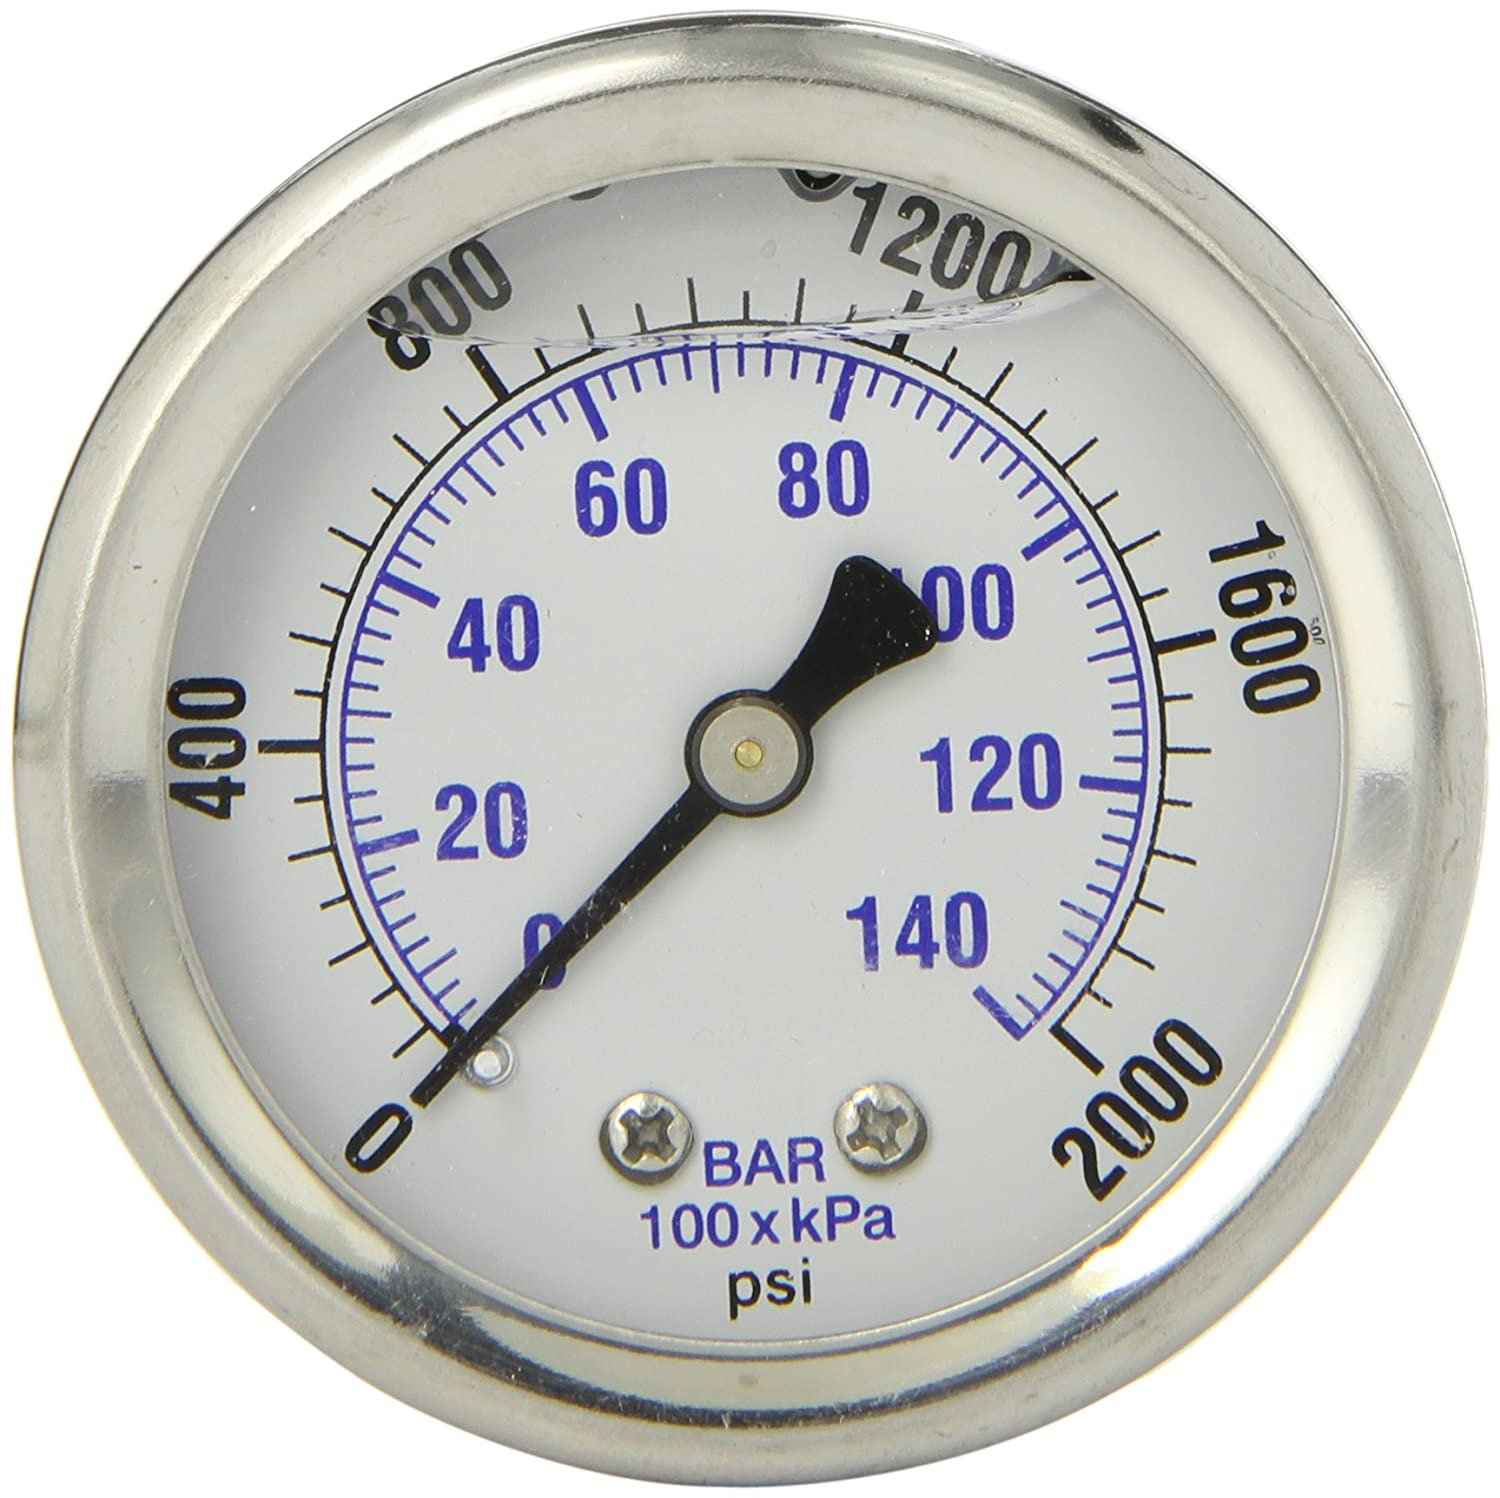 PIC Gauge 202L 204O 2 Dial 0 2000 psi Range 1 4 Male NPT Connection Size Center Back Mount Glycerine Filled Pressure Gauge with a Stainless Steel Case Brass Internals Stainless Steel Bezel and Polycarbonate Lens